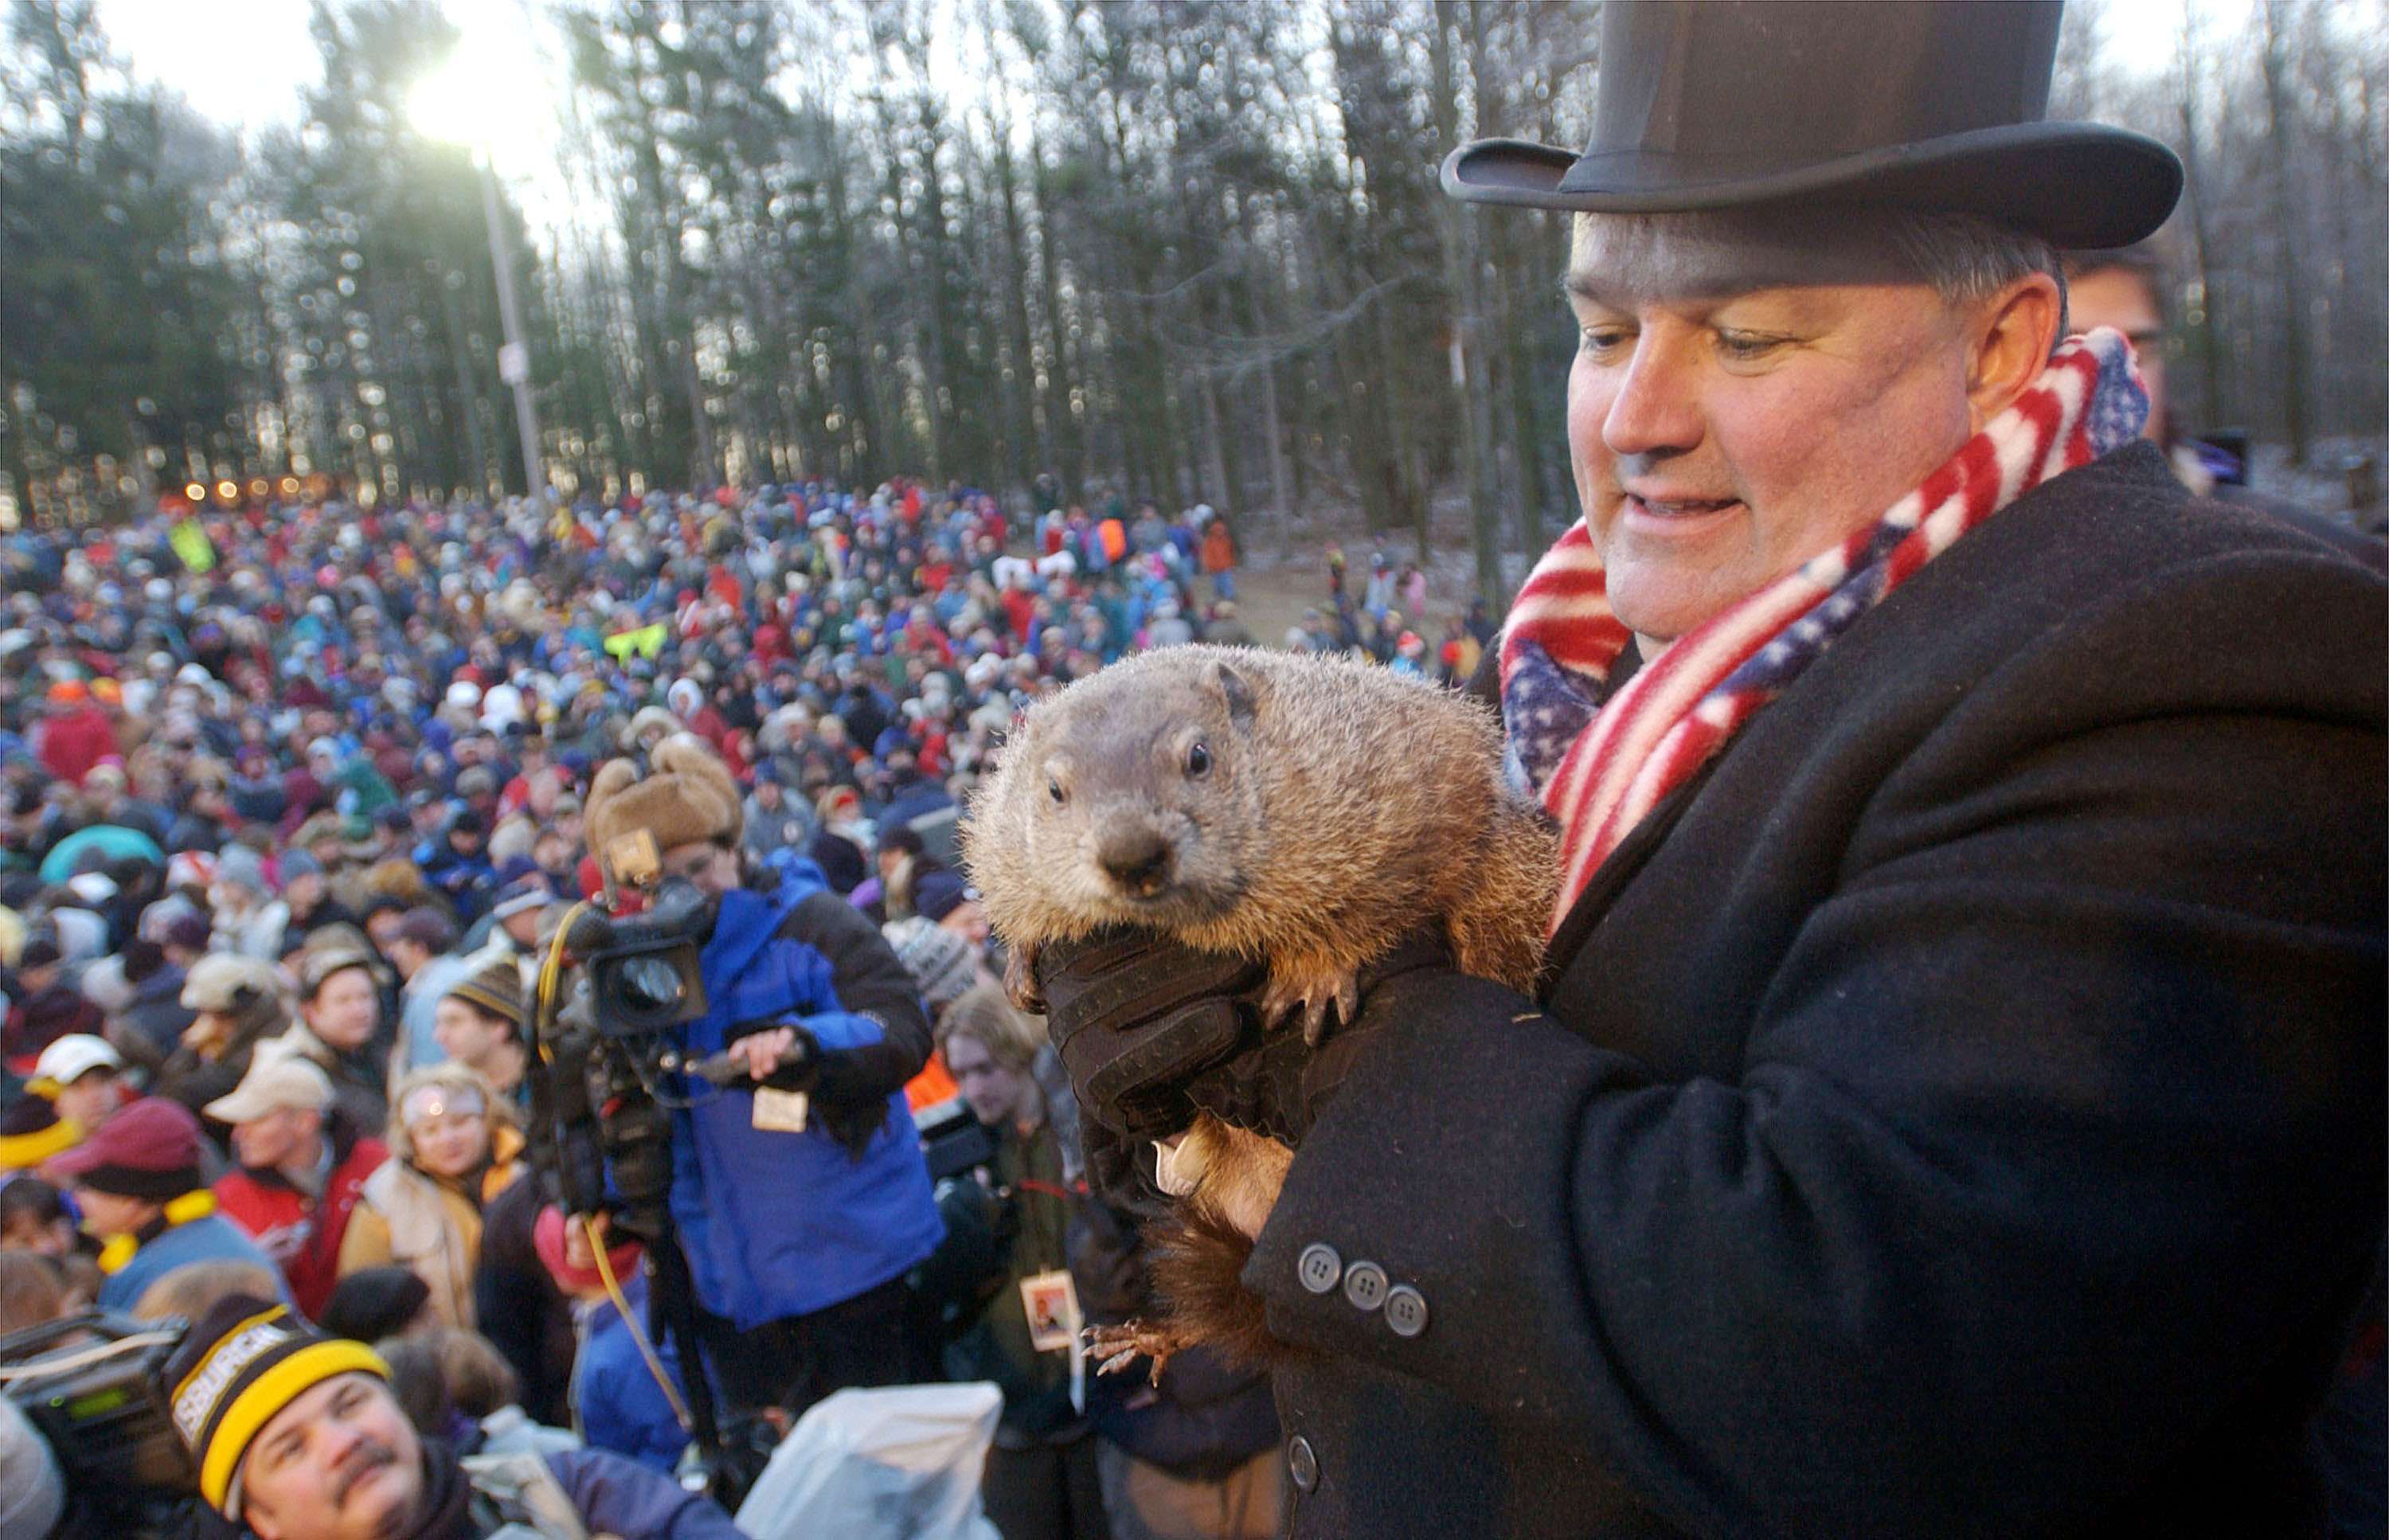 More Weeks of Winter, According to Punxsutawney Phil